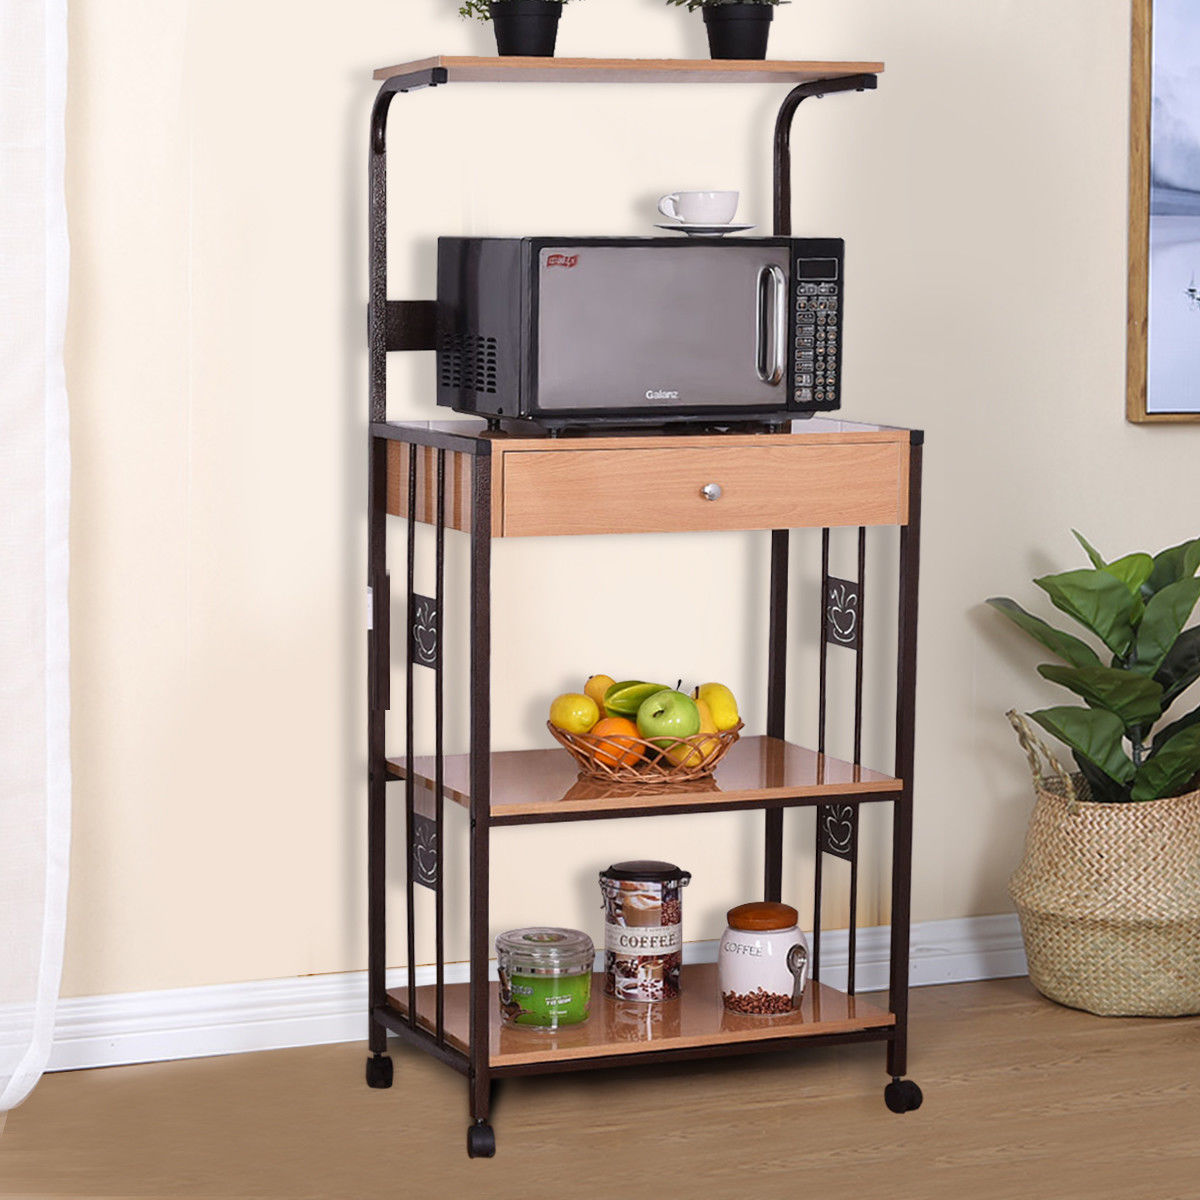 kitchen bakers rack irish blessing costway 59 microwave stand rolling storage cart w electric outlet